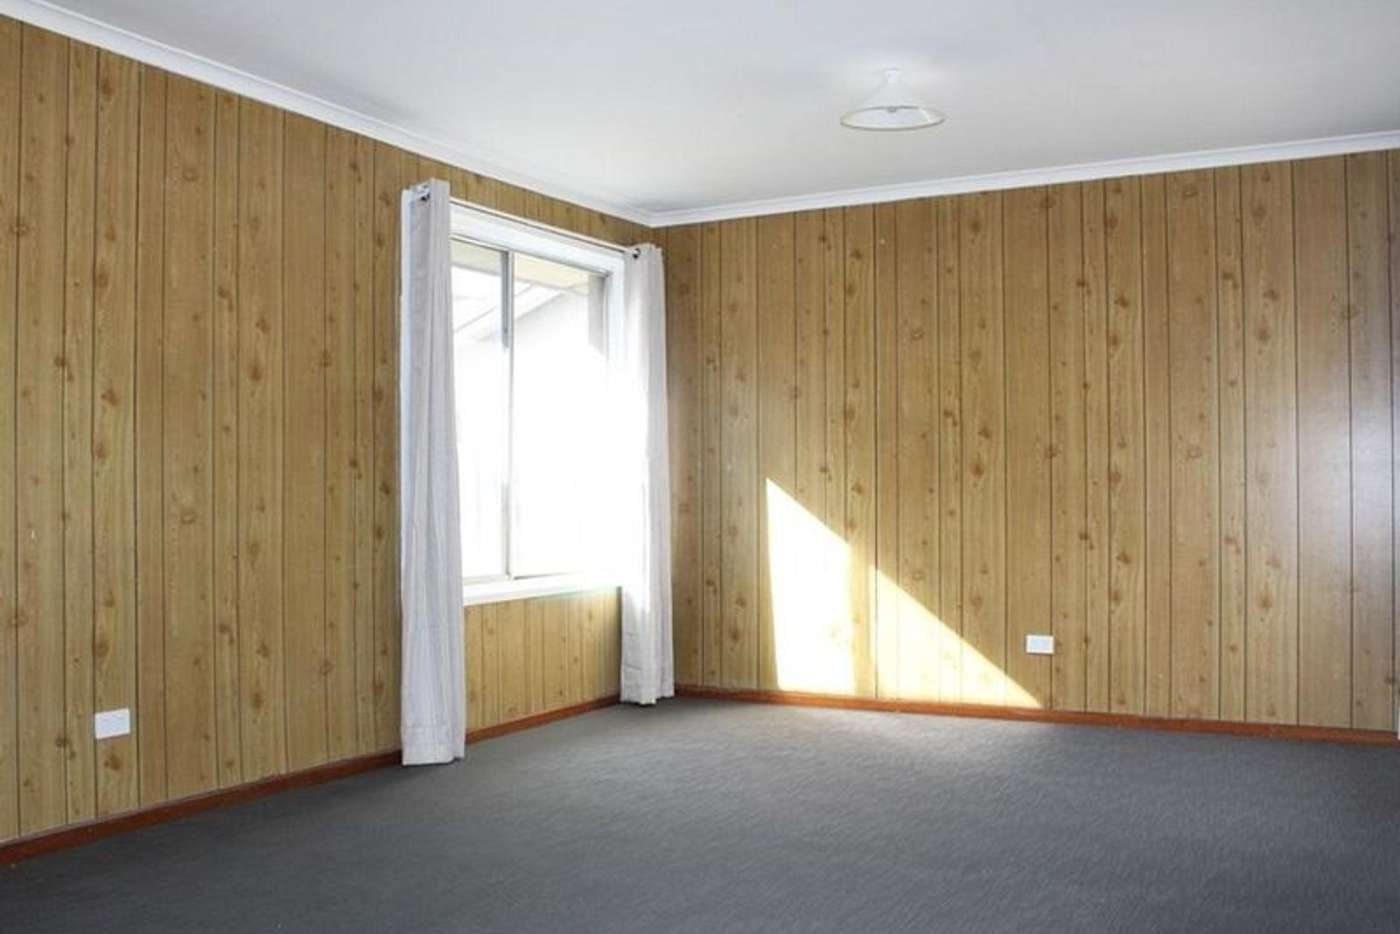 Seventh view of Homely house listing, 51 Warmington Road, Sunshine West VIC 3020